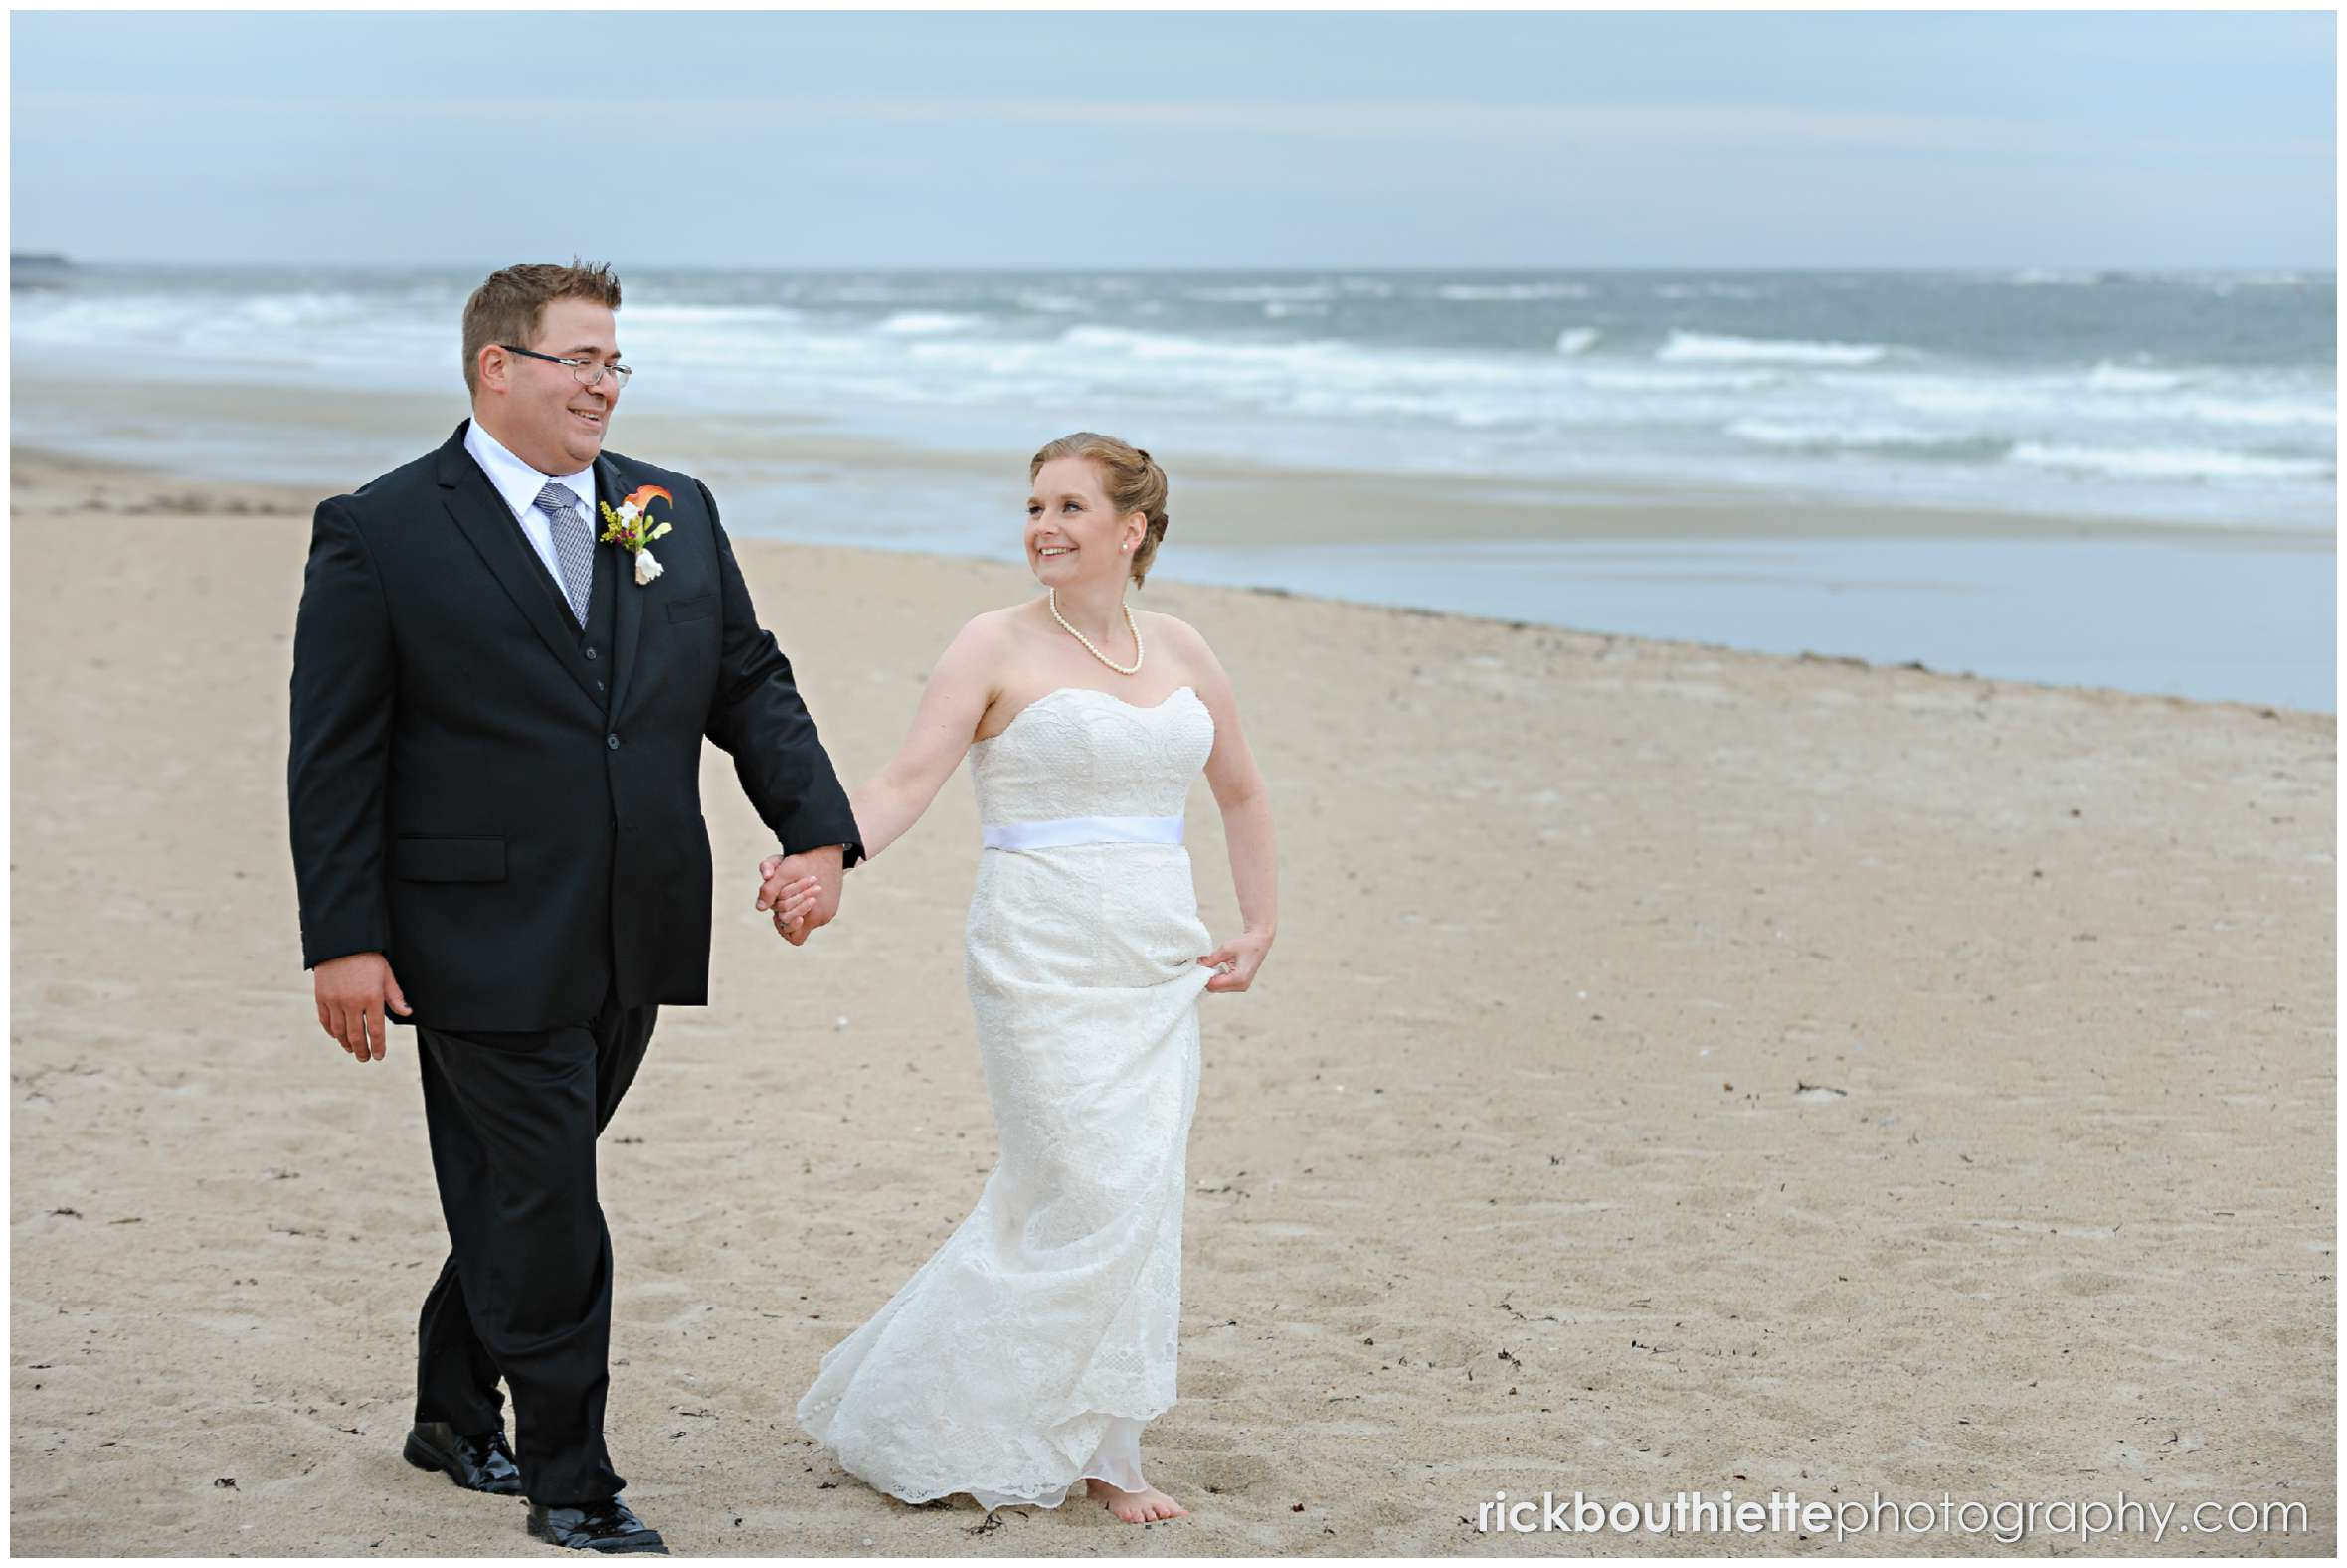 bride and groom walking on Seabrook beach after their seacoast wedding ceremony